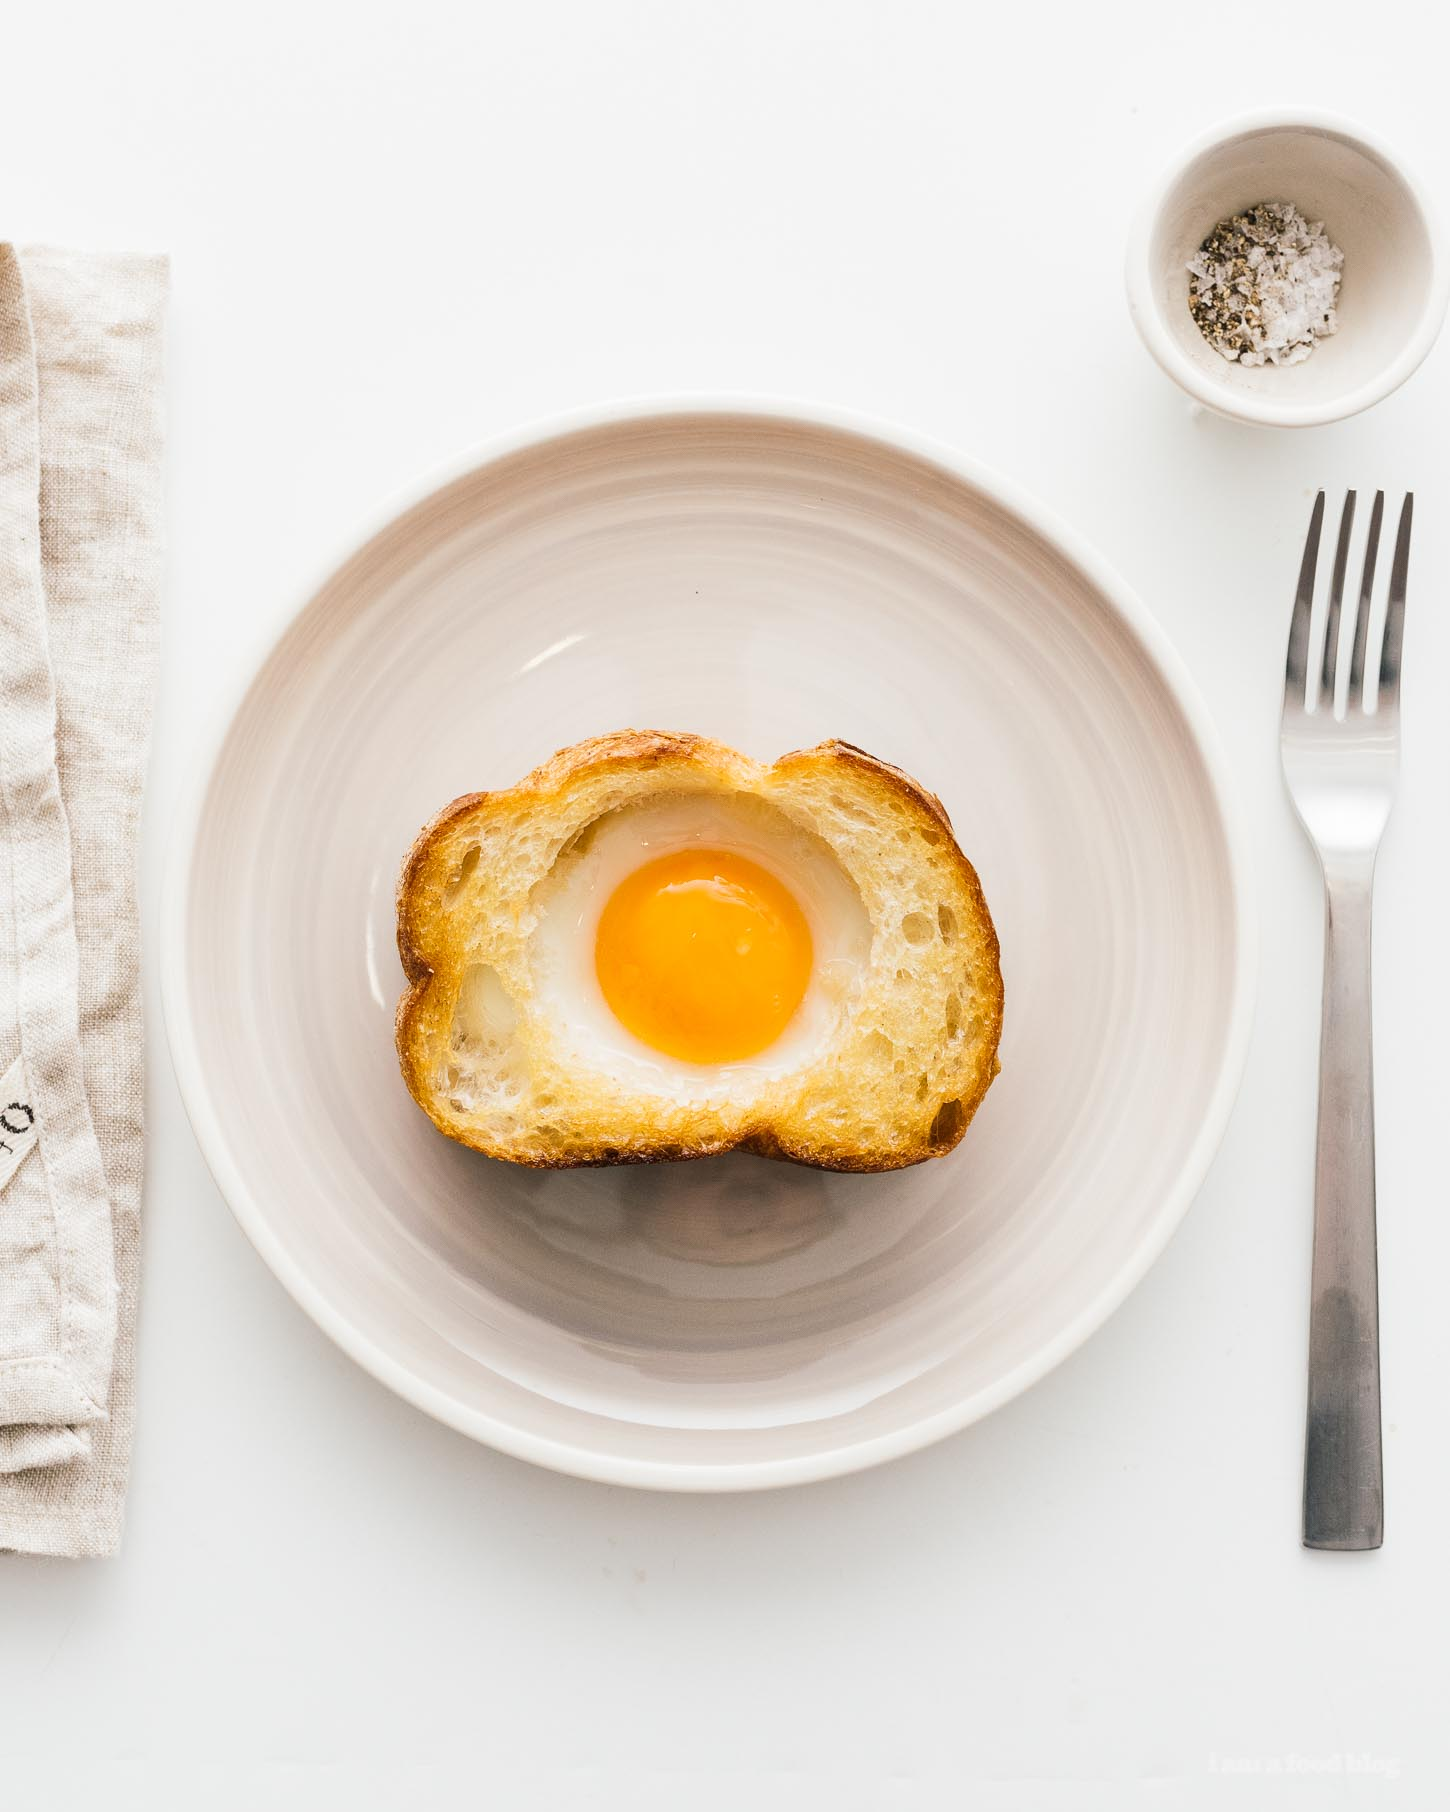 How to make egg-in-a-hole toast | www.iamafoodblog.com